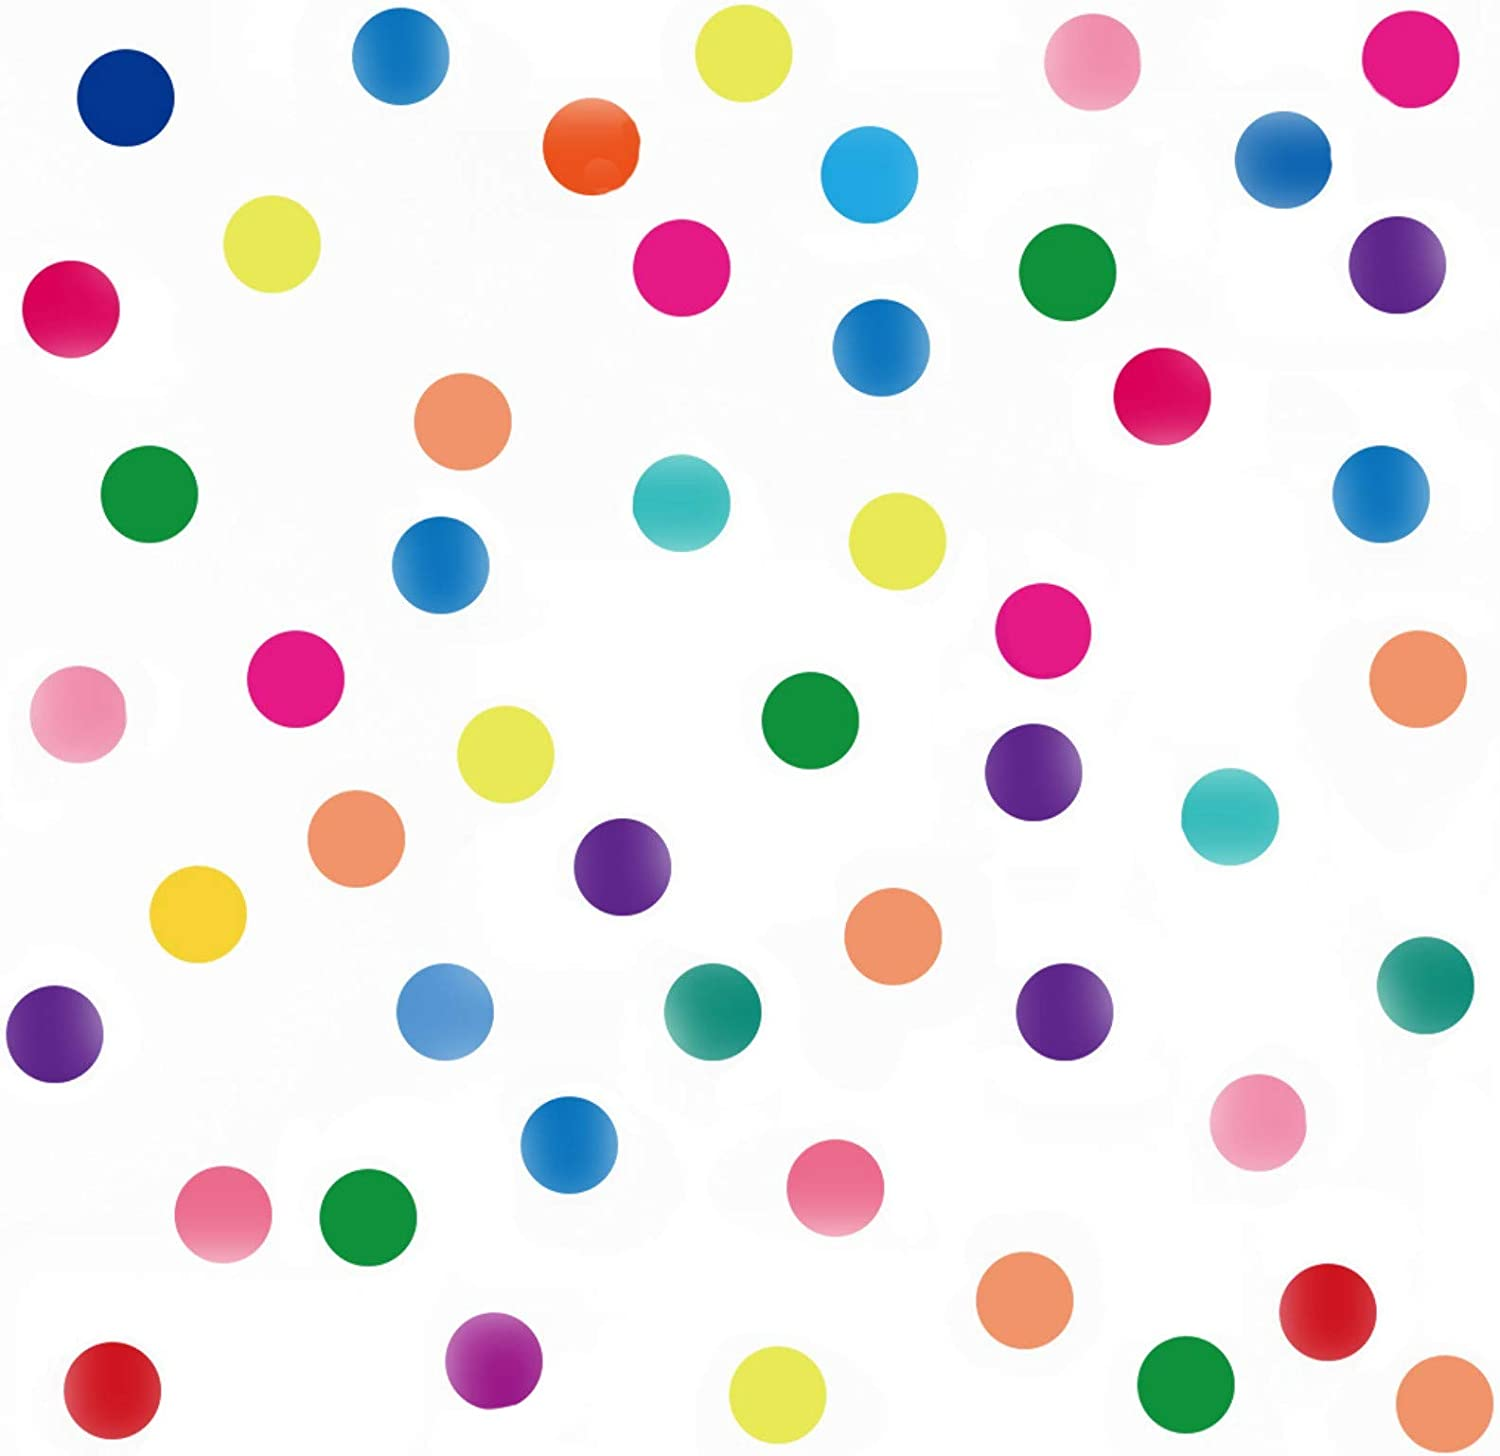 Maydahui Polka Dots Wall Decals(160 Dots)Colorful Round Dot Confetti Wall Stickers Rainbow Colors Circles Removable Vinyl Wall Decor for Bedroom Living Room Playroom Nursery